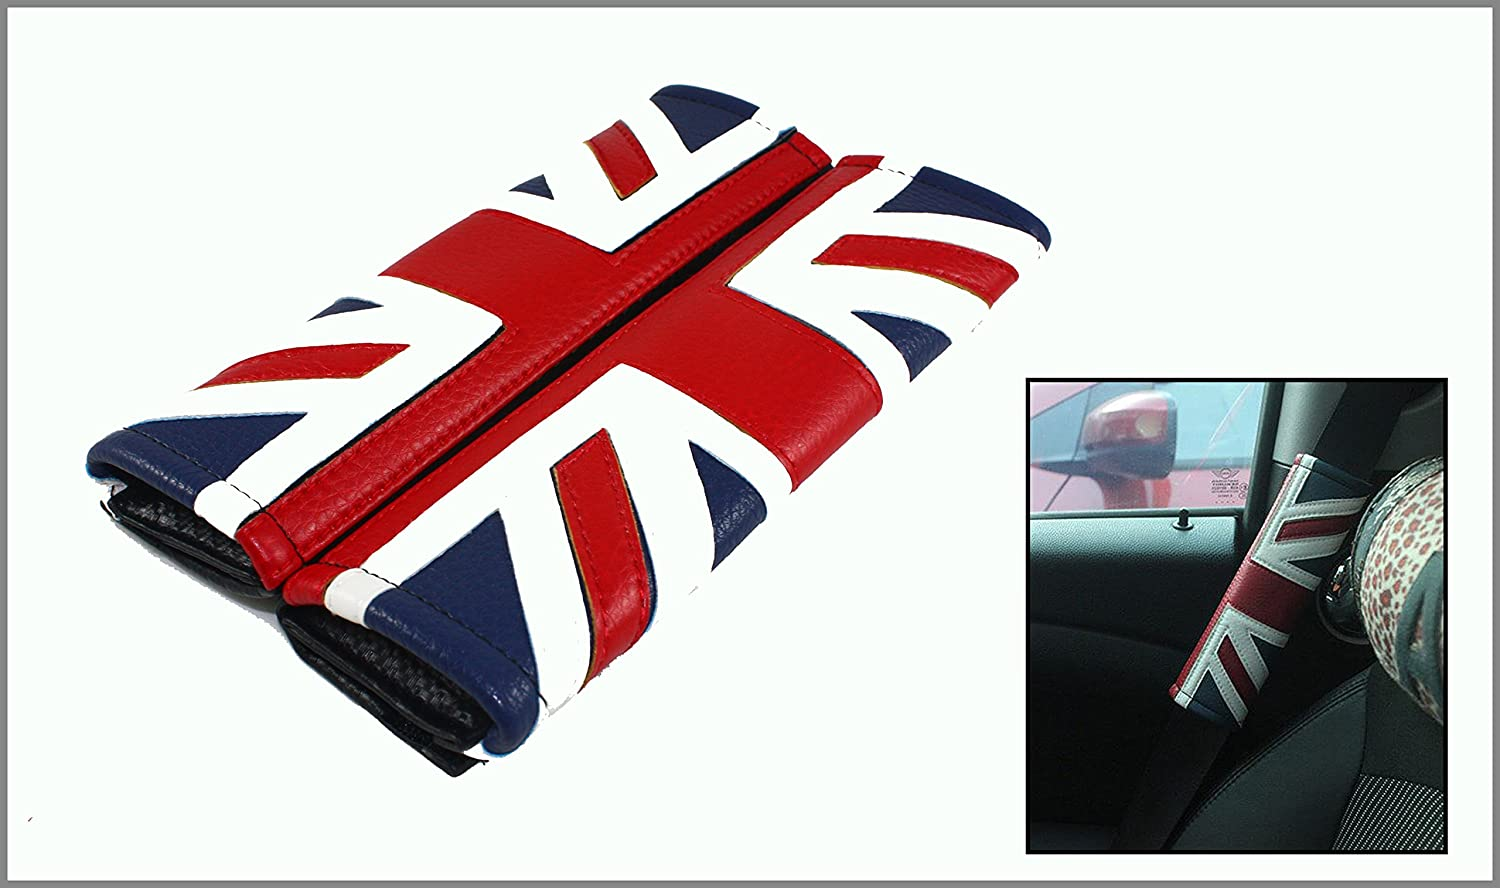 Flypc Seat Belt Covers Safety Shoulder Strap Cushion Harness Pad for Mini Cooper Cars Embroidered Badge Adults and Children Shoulder Pad Opening Fiber 2 Pack Red /& Blue Union Jack Flag Style